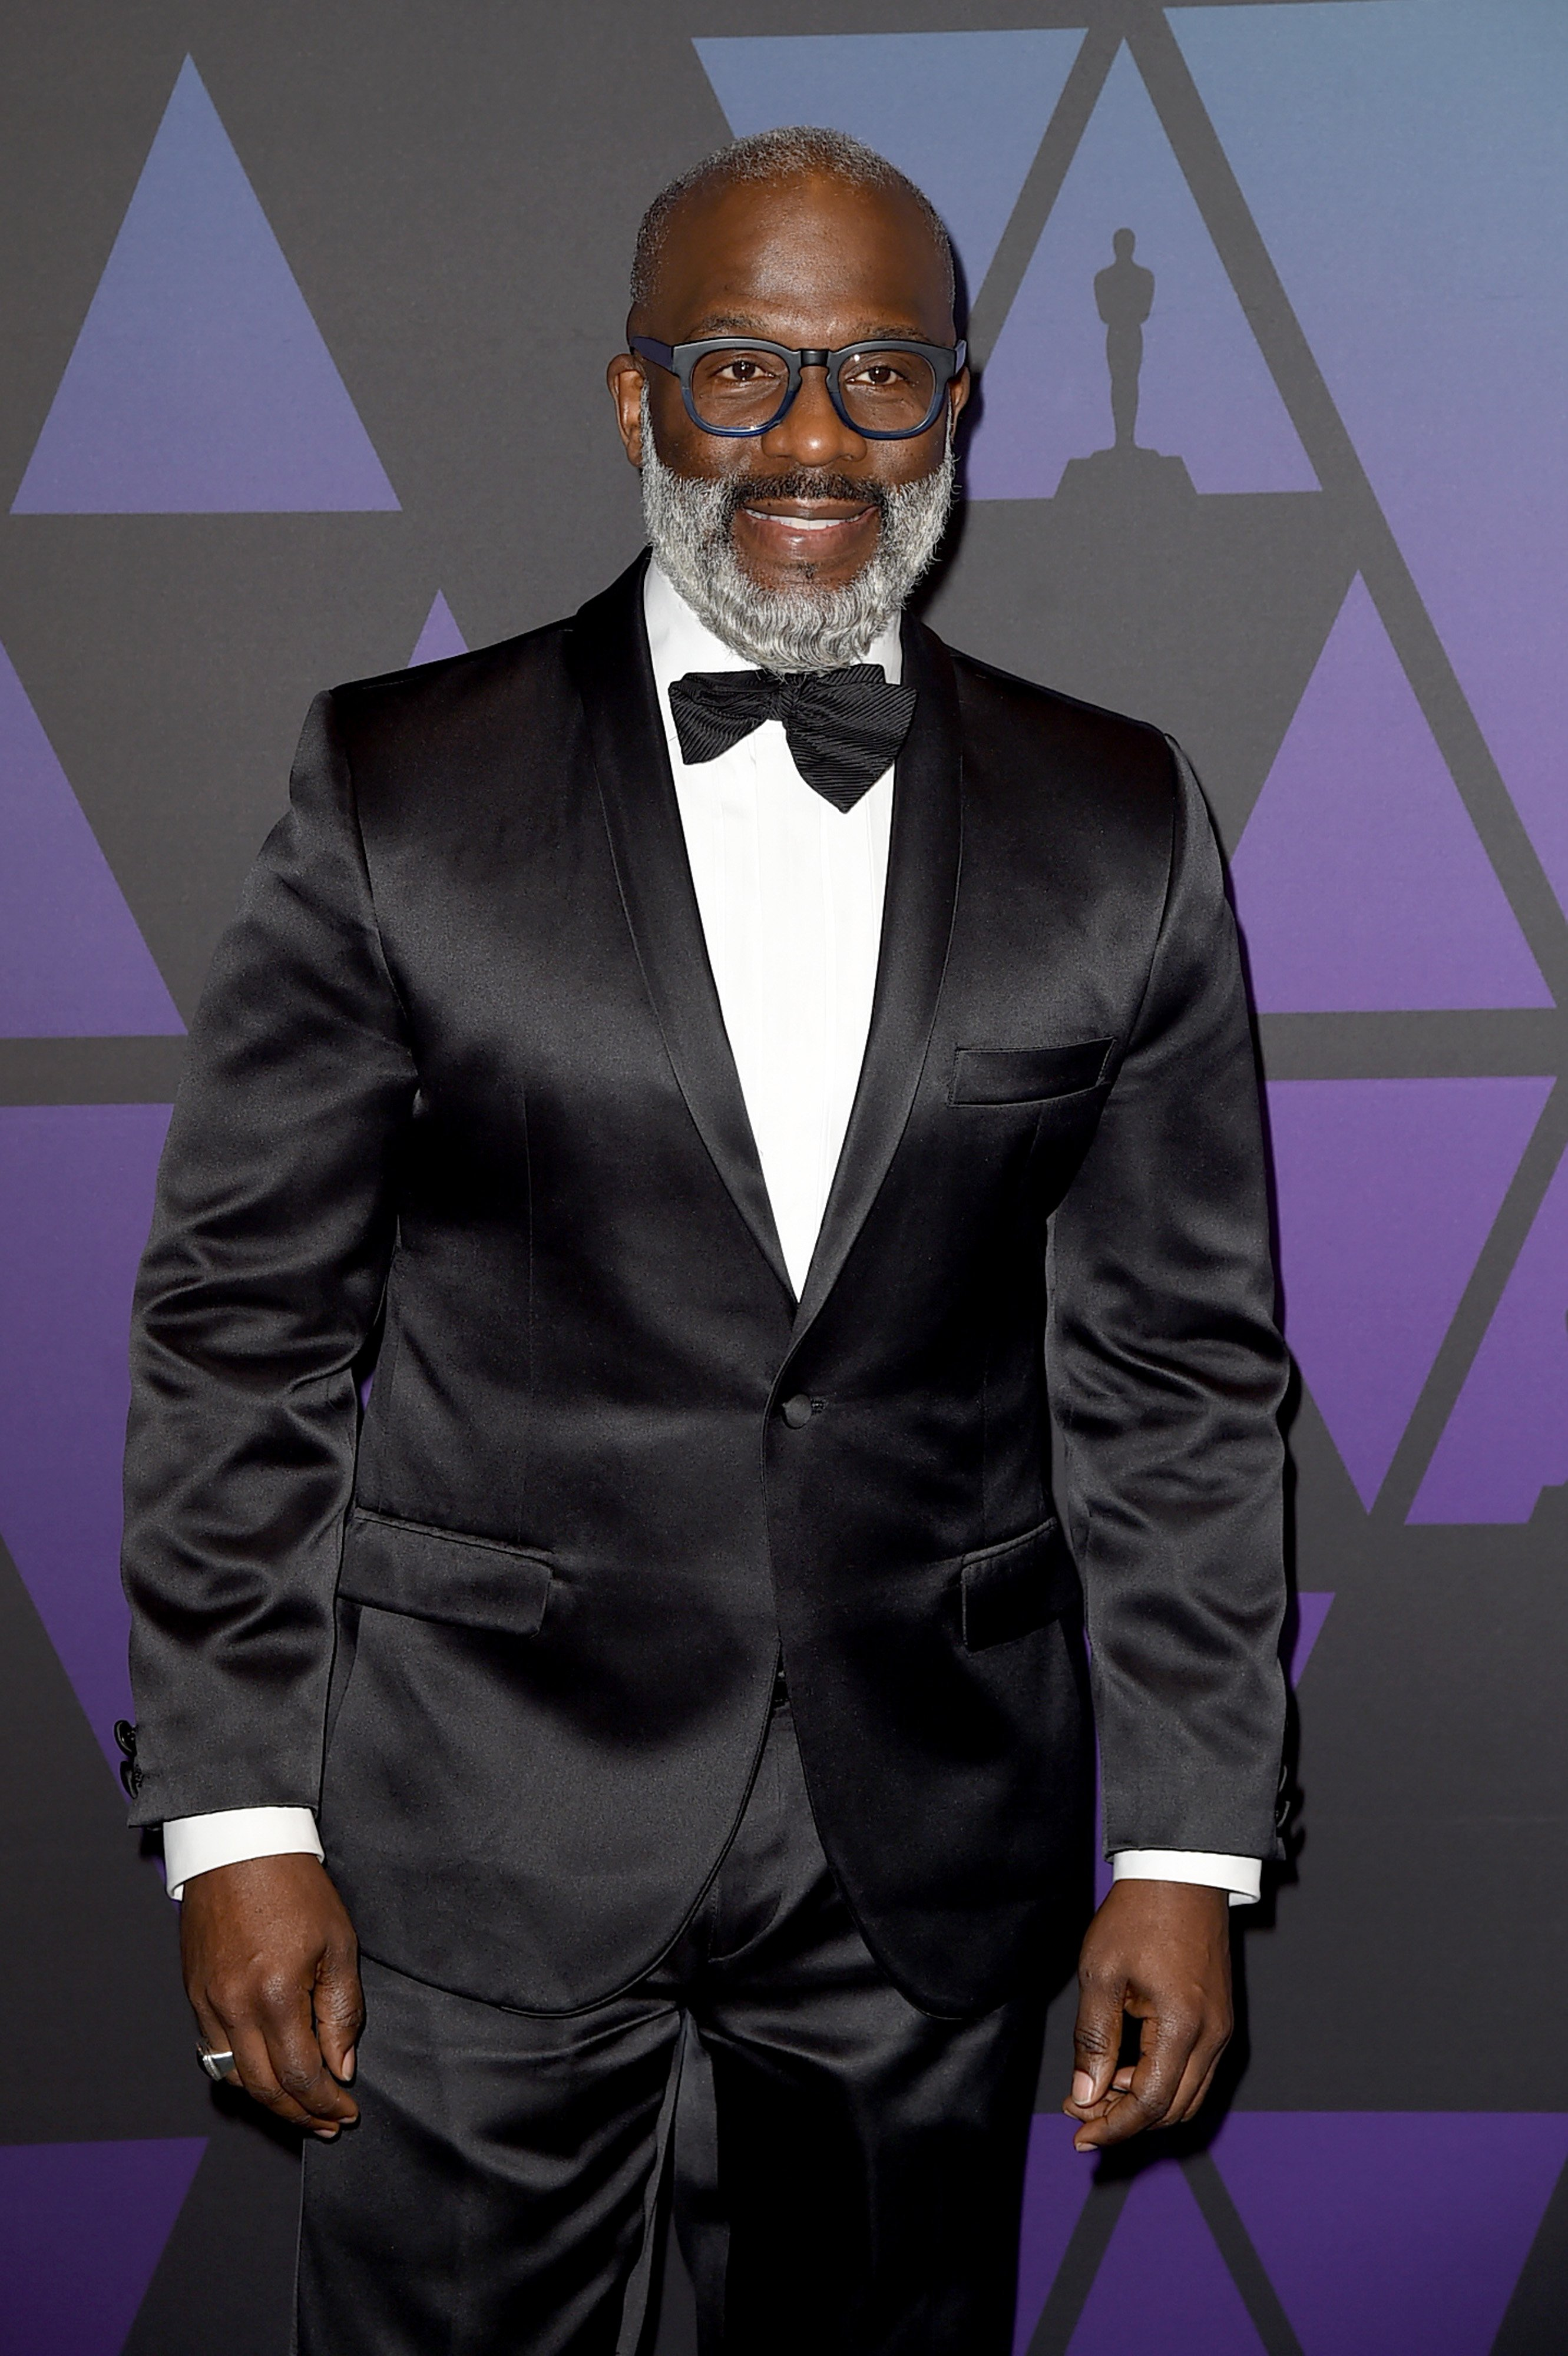 Bebe Winans at the 10th Annual Governor's Ball of the Academy of Motion Picture Arts and Sciences in November 2018. | Photo: Getty Images